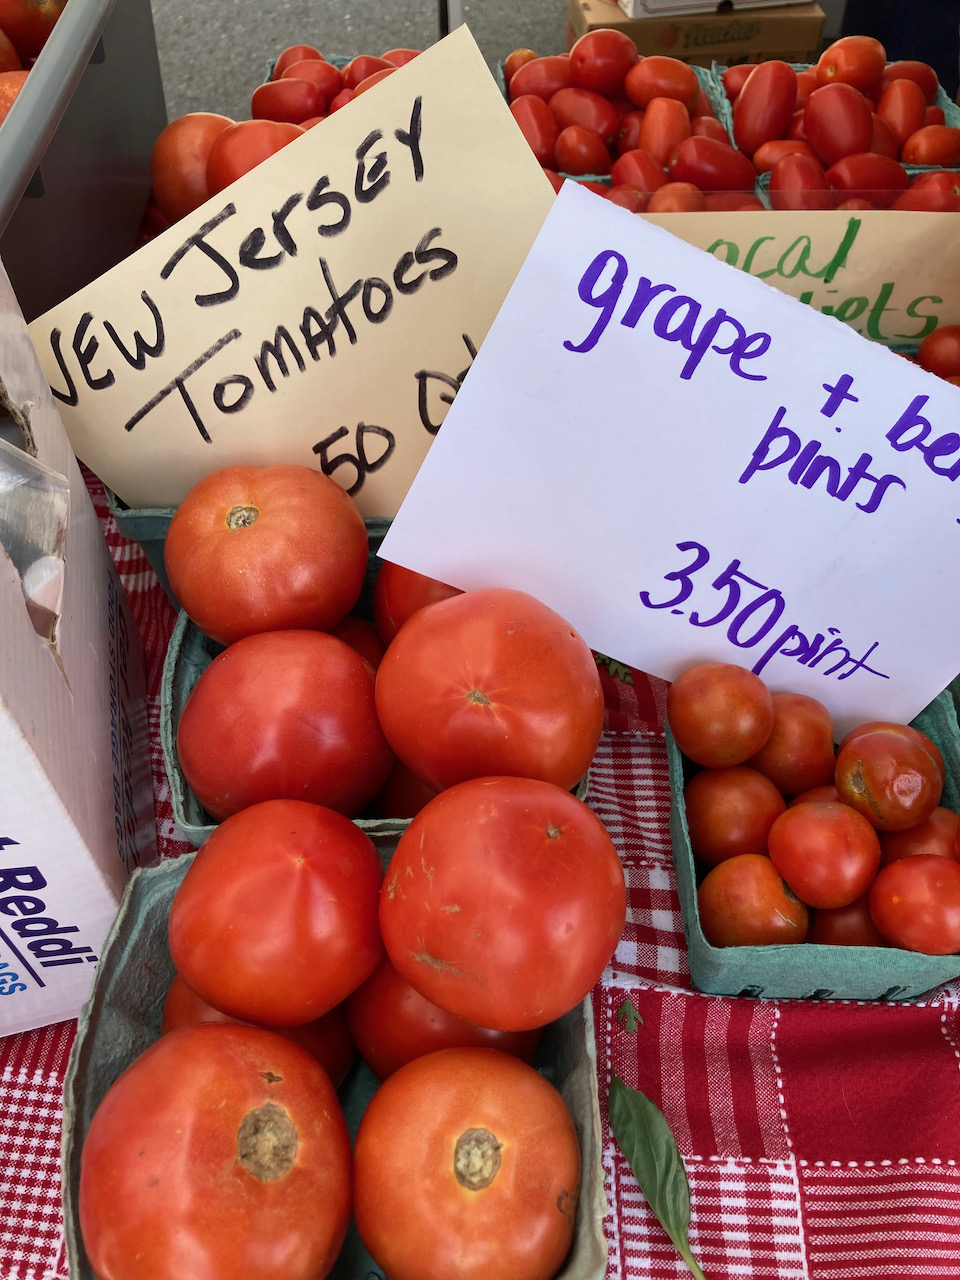 Tomatos on table, with a sign for NEW JERSEY TOMATOES and GRAPE AND BERRY PINTS $3.50 PINT